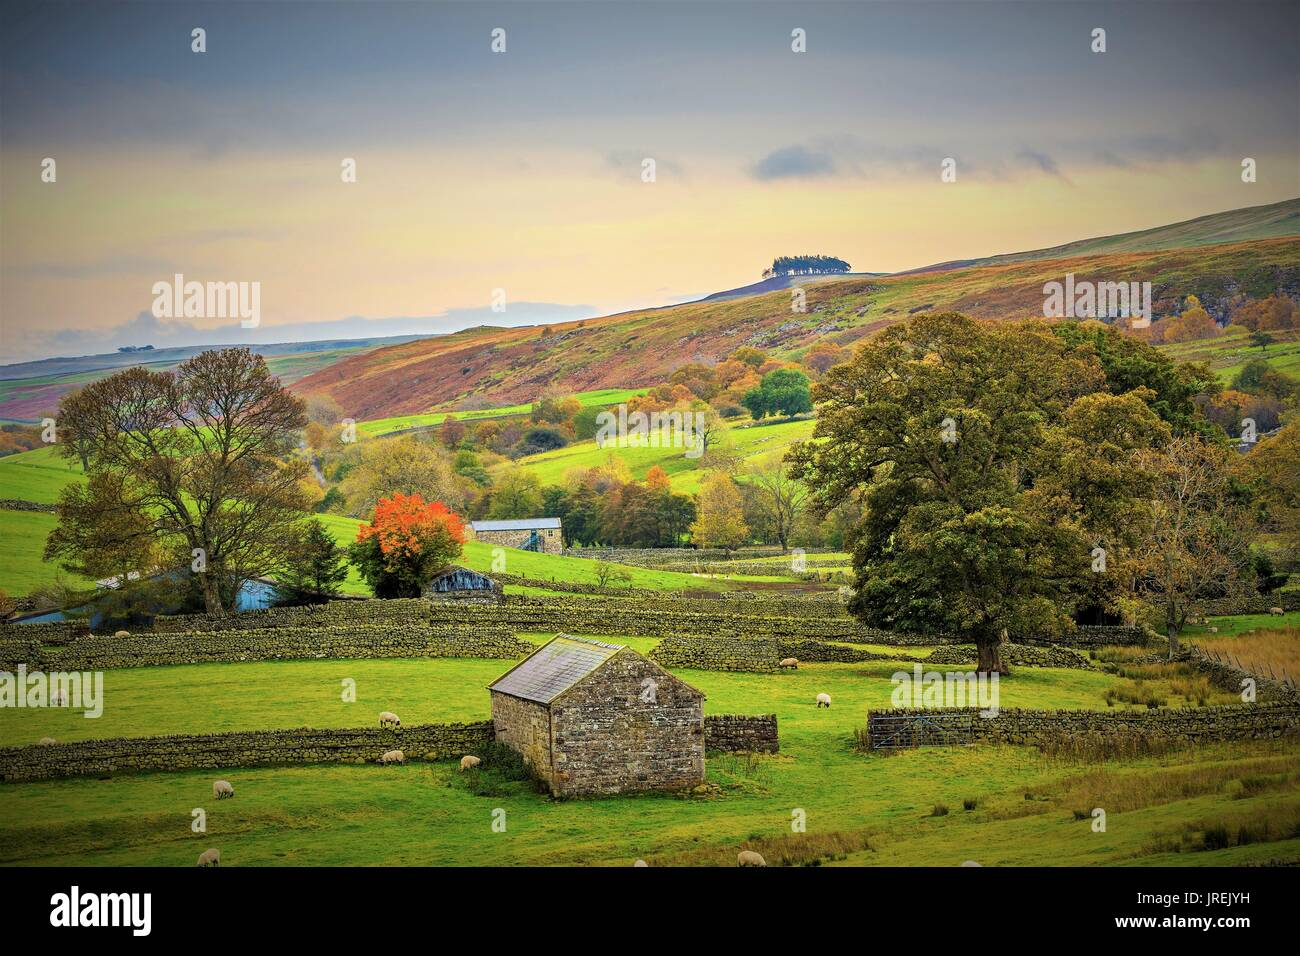 View of Kirk Carrion from Holwick. - Stock Image